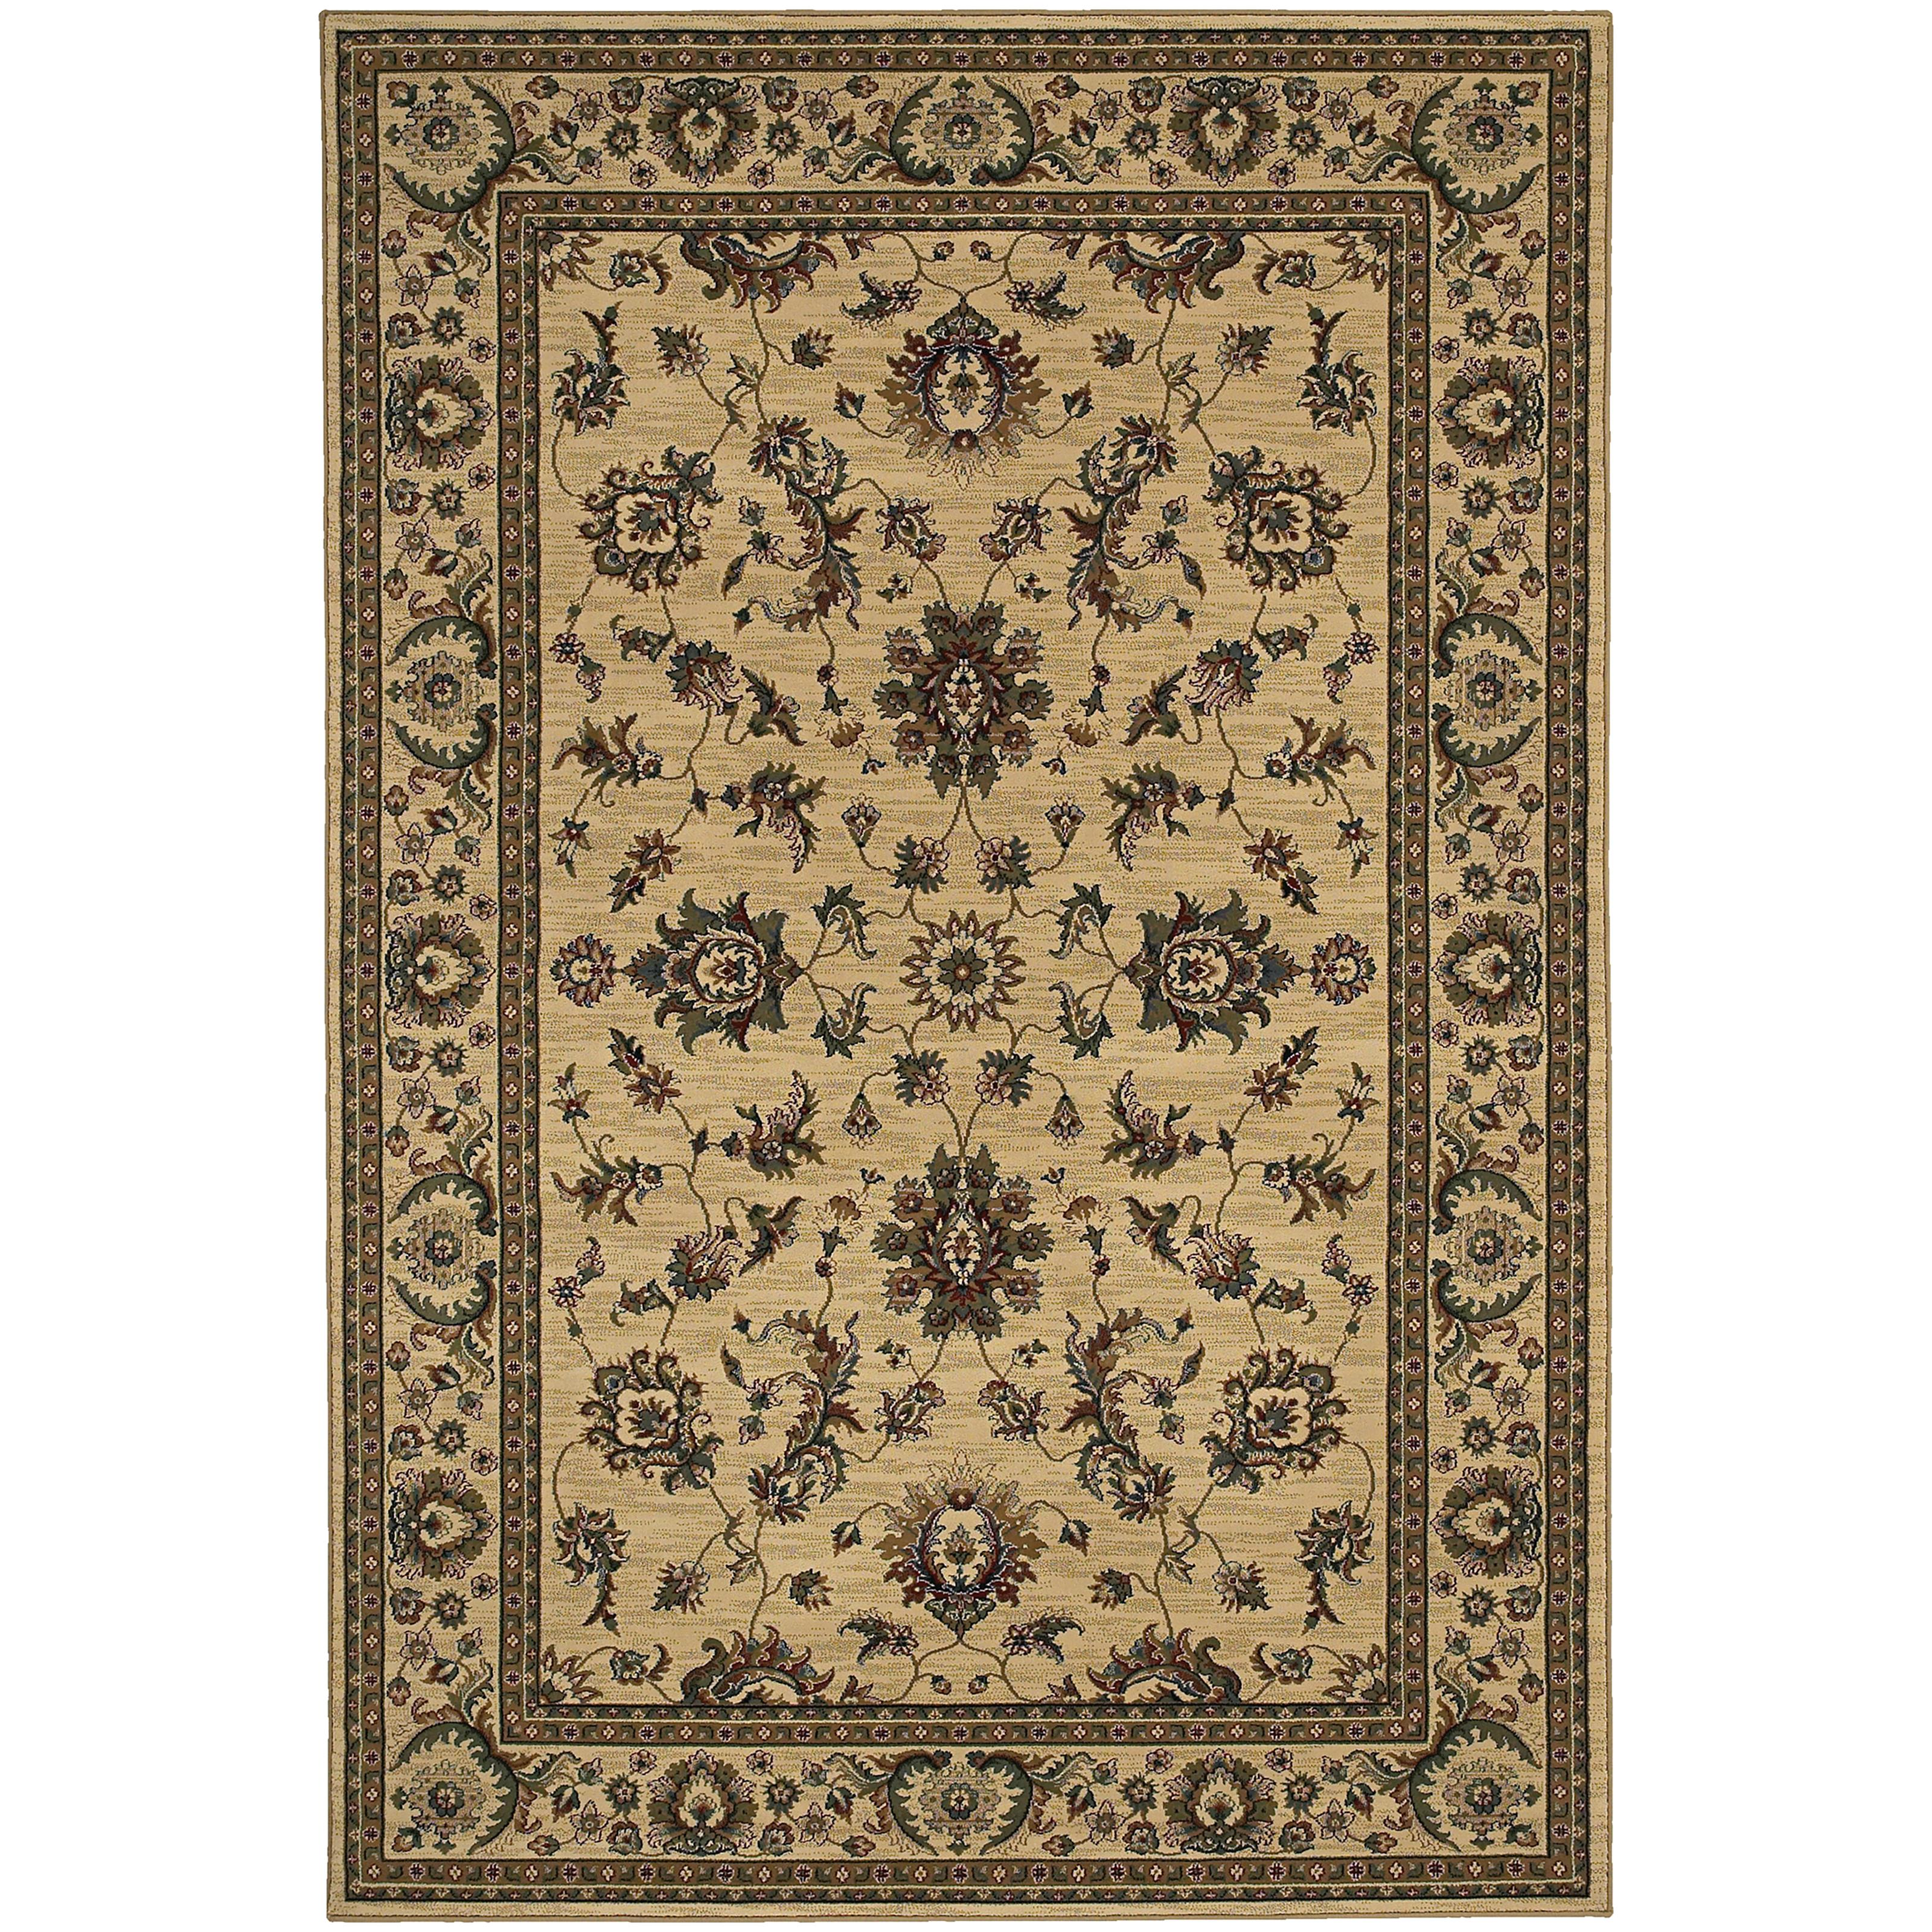 Oriental Weavers Ariana 12' X 15' Rug - Item Number: A311I3360450ST